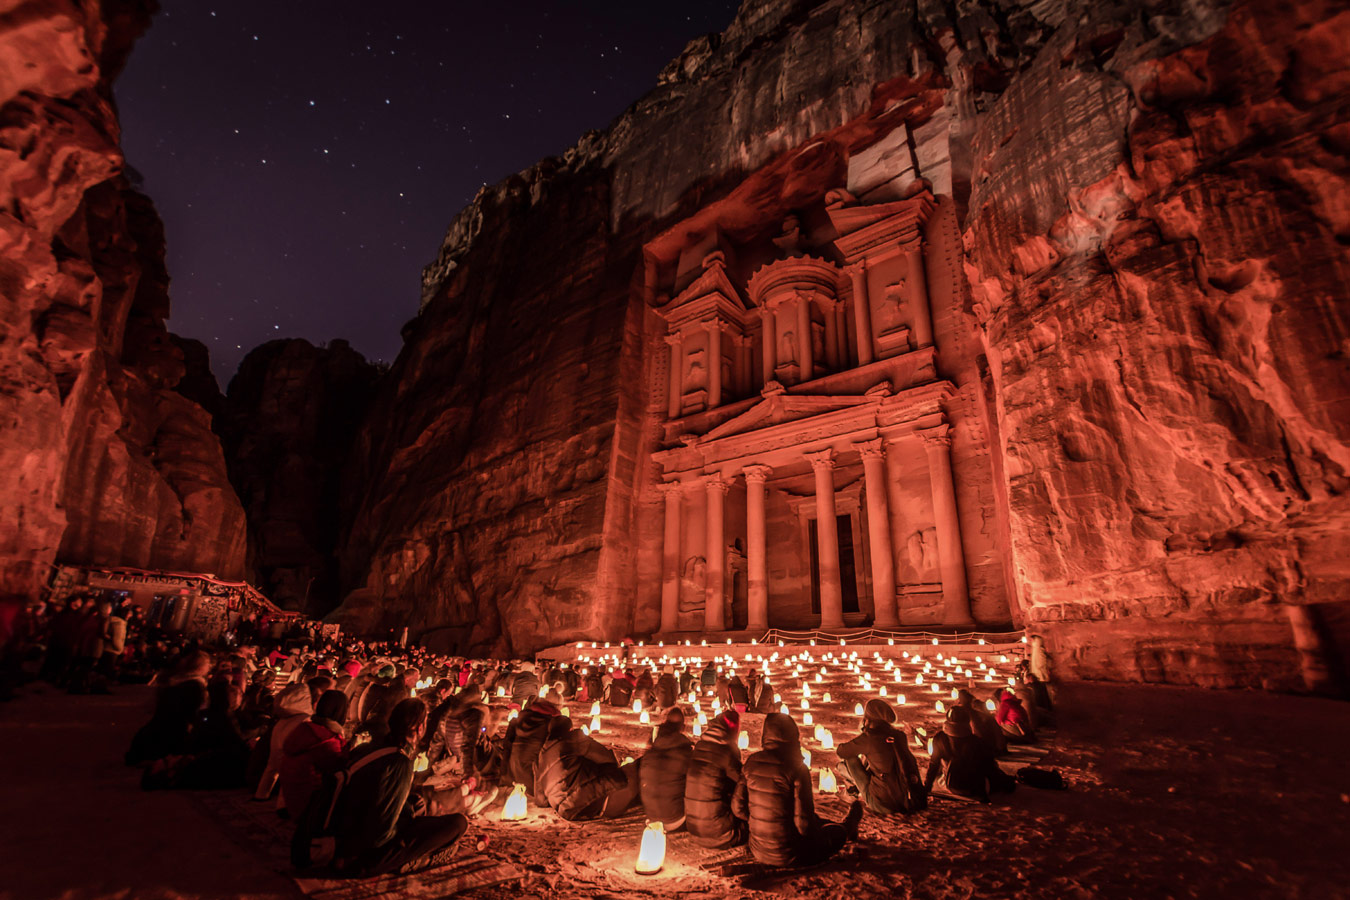 Petra, Jordan, © Mustafa Waad Saeed, 2nd prize, Wiki Loves Monuments Photo Contest